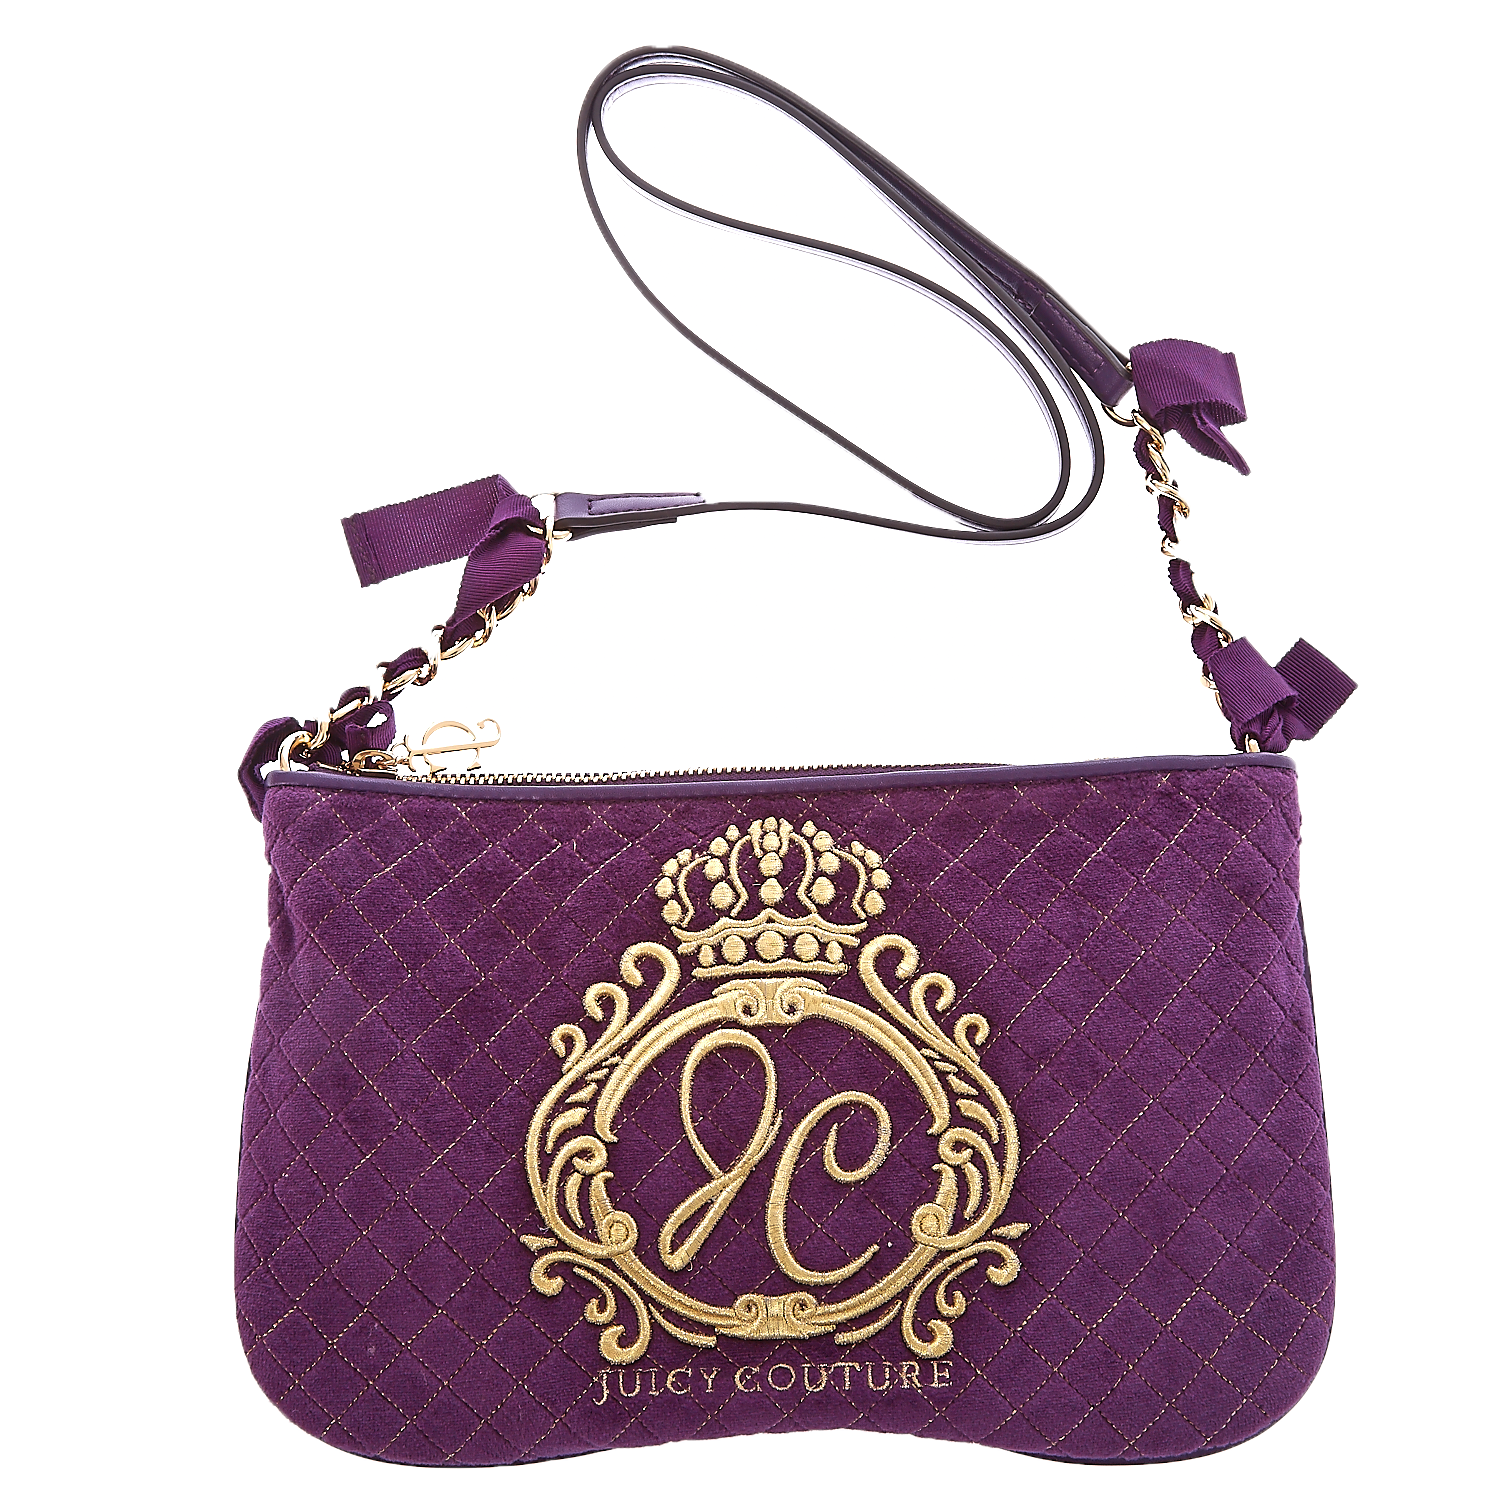 JUICY COUTURE – Τσαντάκι Juicy Couture μωβ 1434588.0-00D2